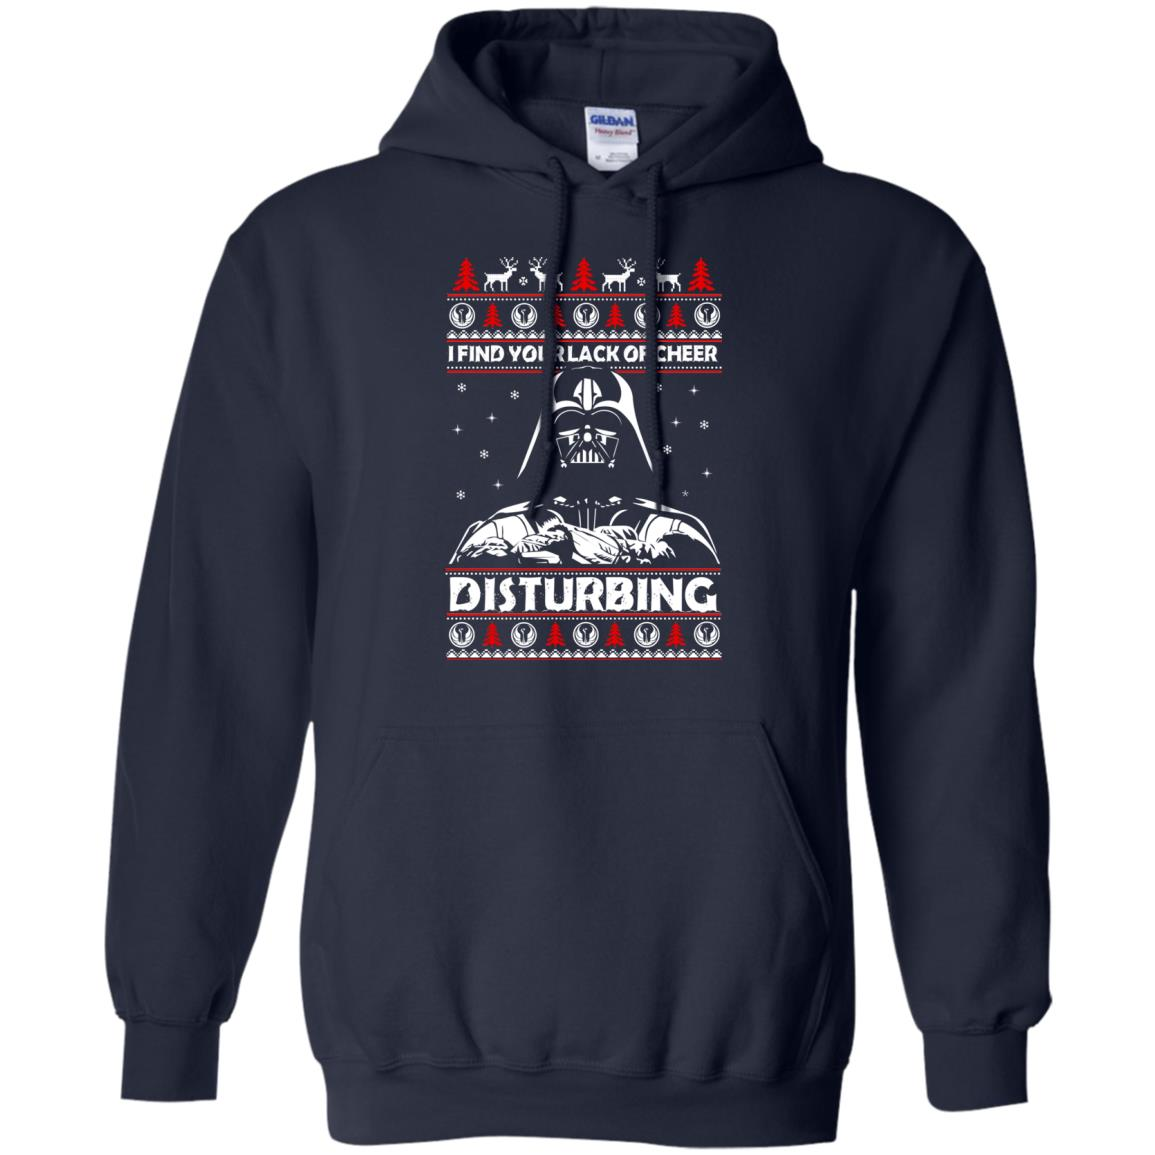 image 1763 - Darth Vader: I Find Your Lack of Cheer Disturbing Sweater, Shirt